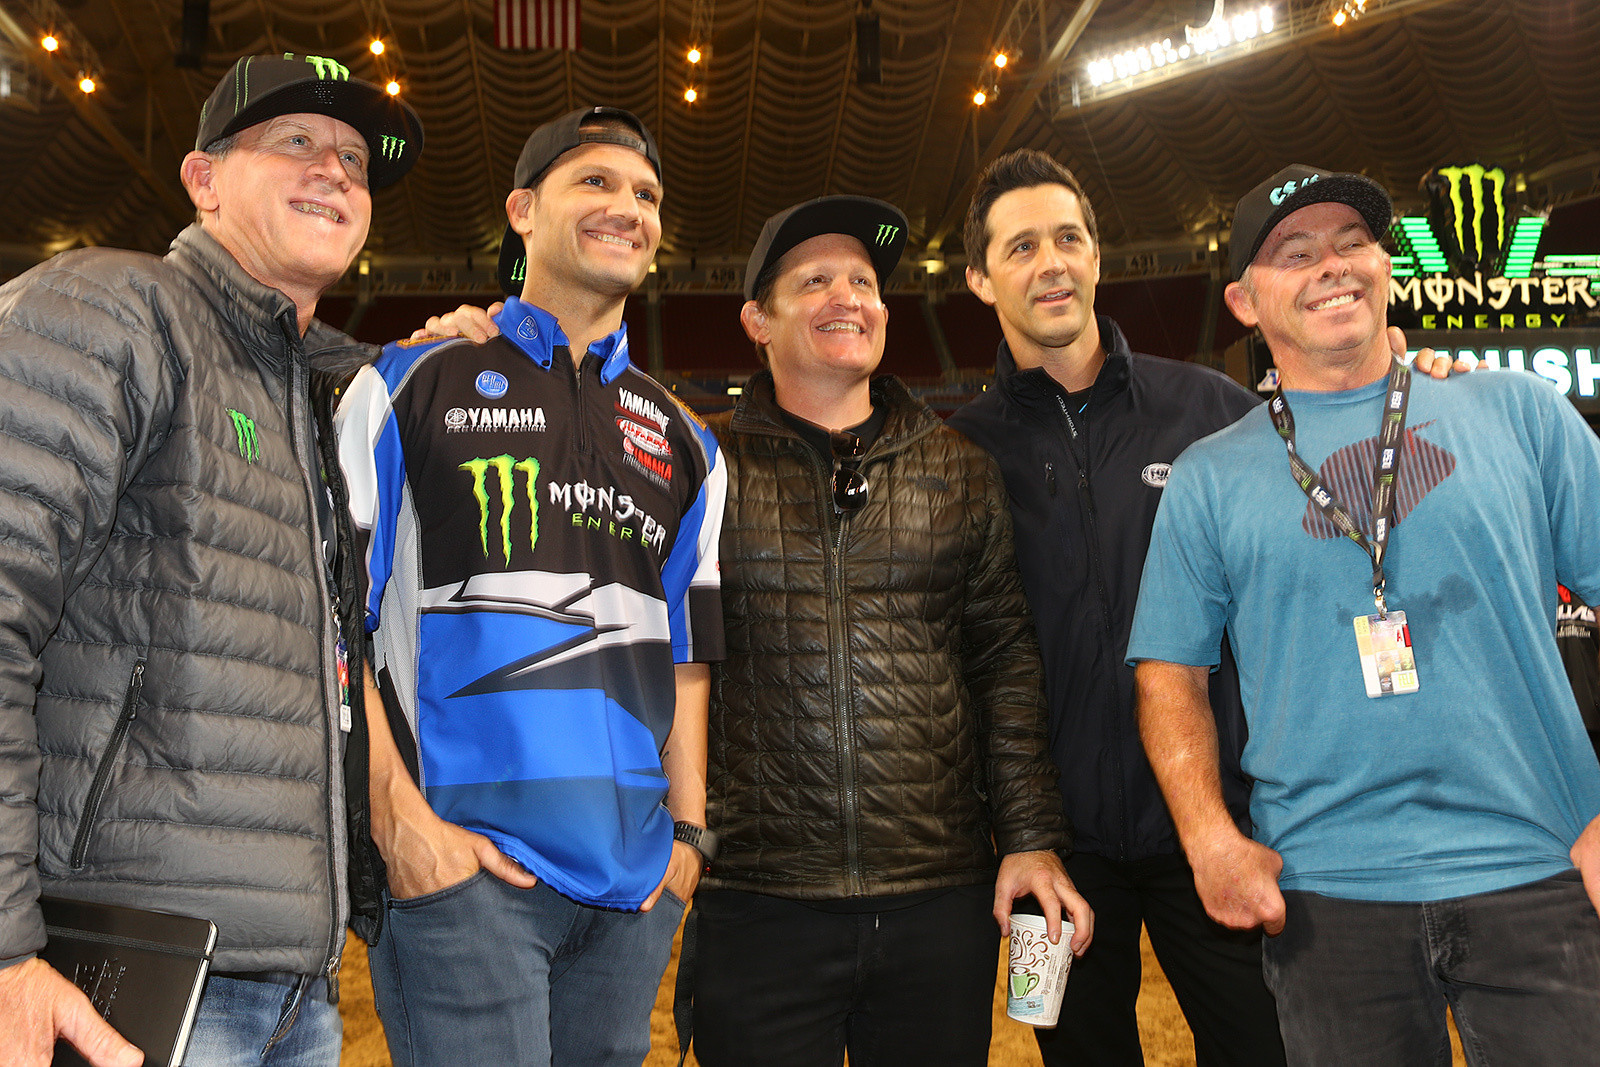 Johnny O'Mara, Chad Reed, Ricky Carmichael, Jeff Emig, and Jeff Ward - Pit Bits: St. Louis - Motocross Pictures - Vital MX